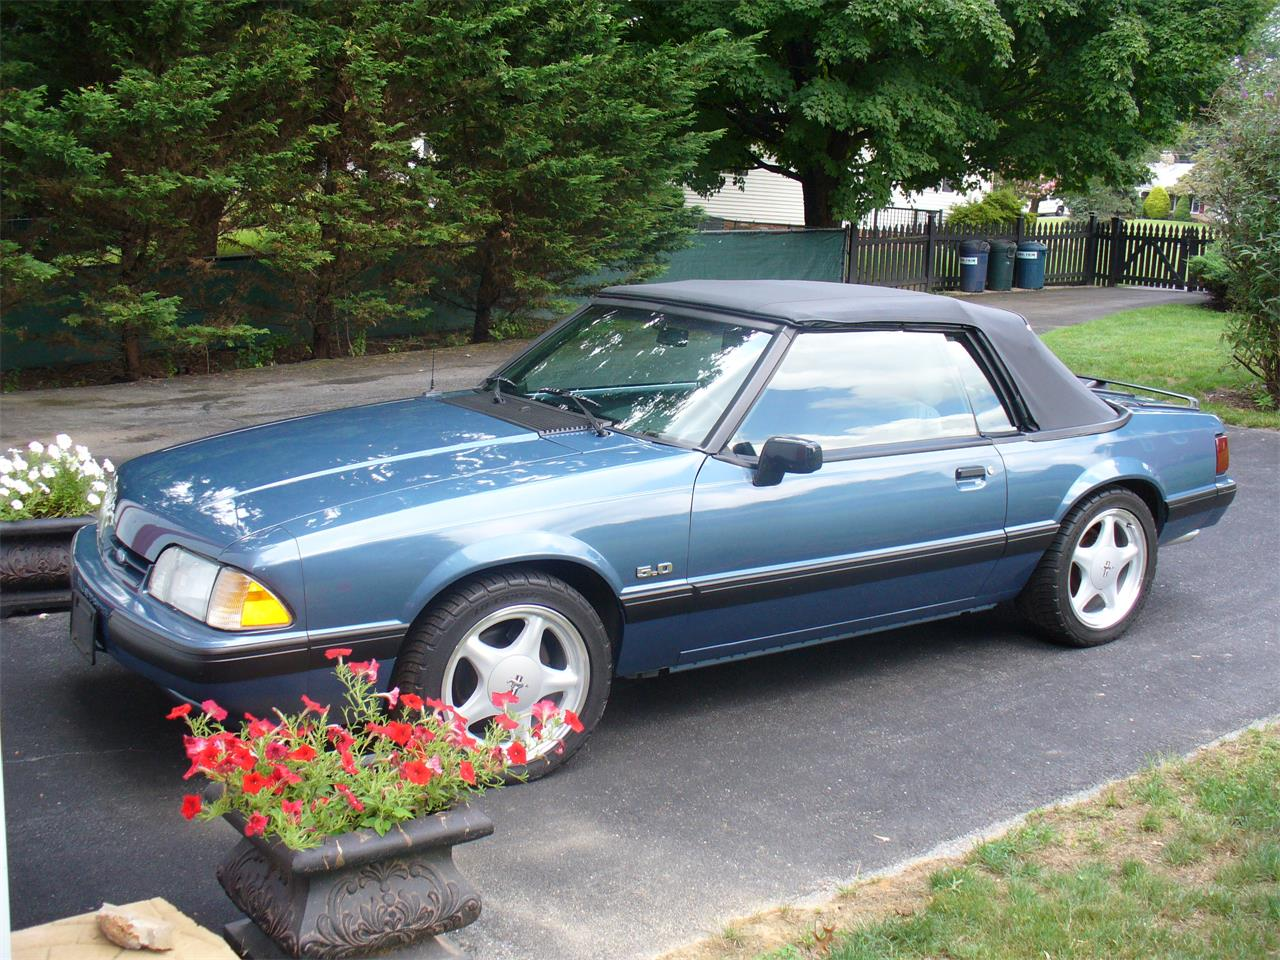 Large picture of 89 mustang oahi